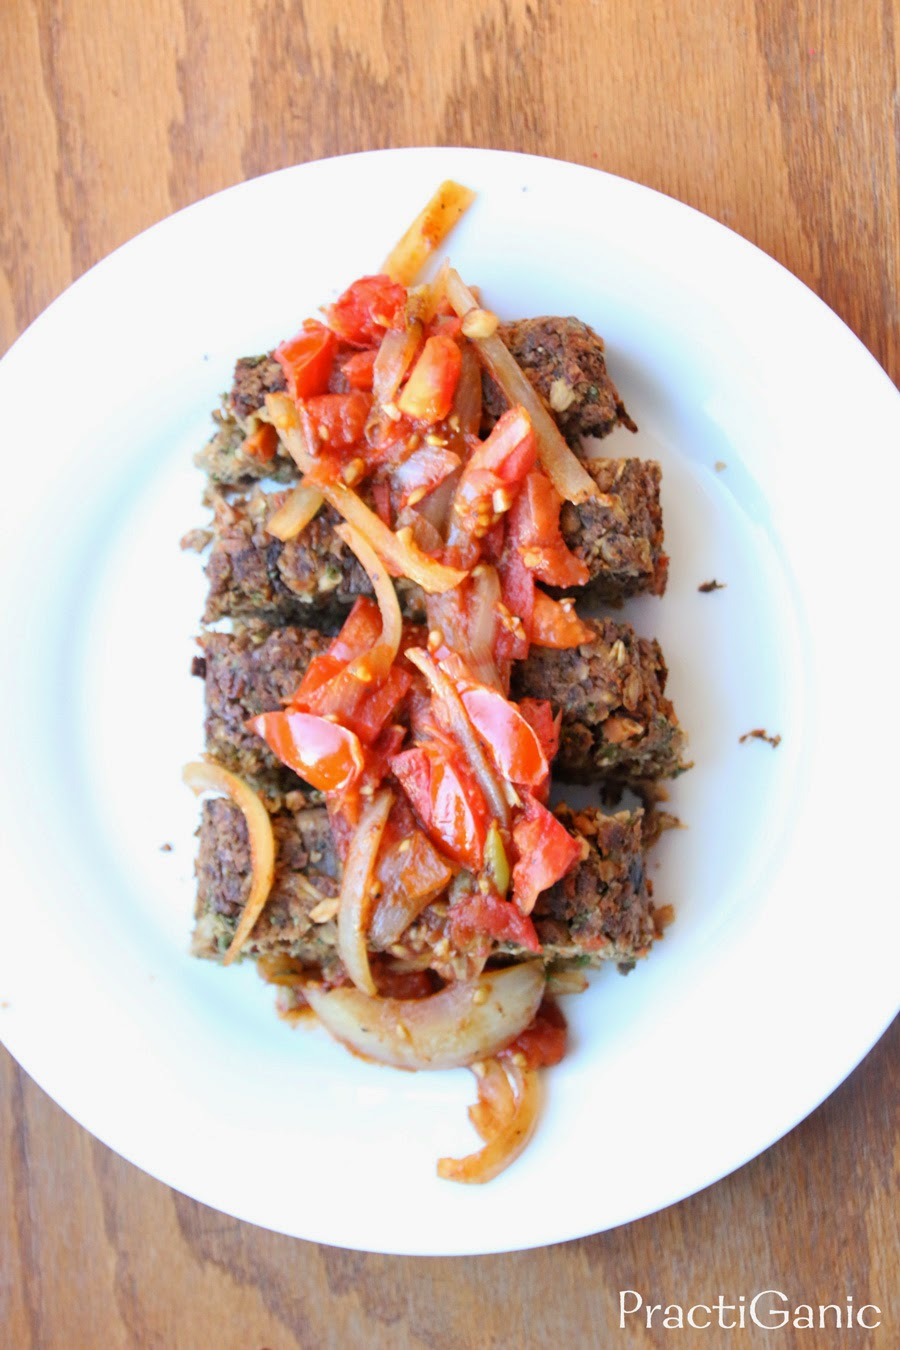 Mushroom Nut Loaf with Balsamic Tomato Chutney